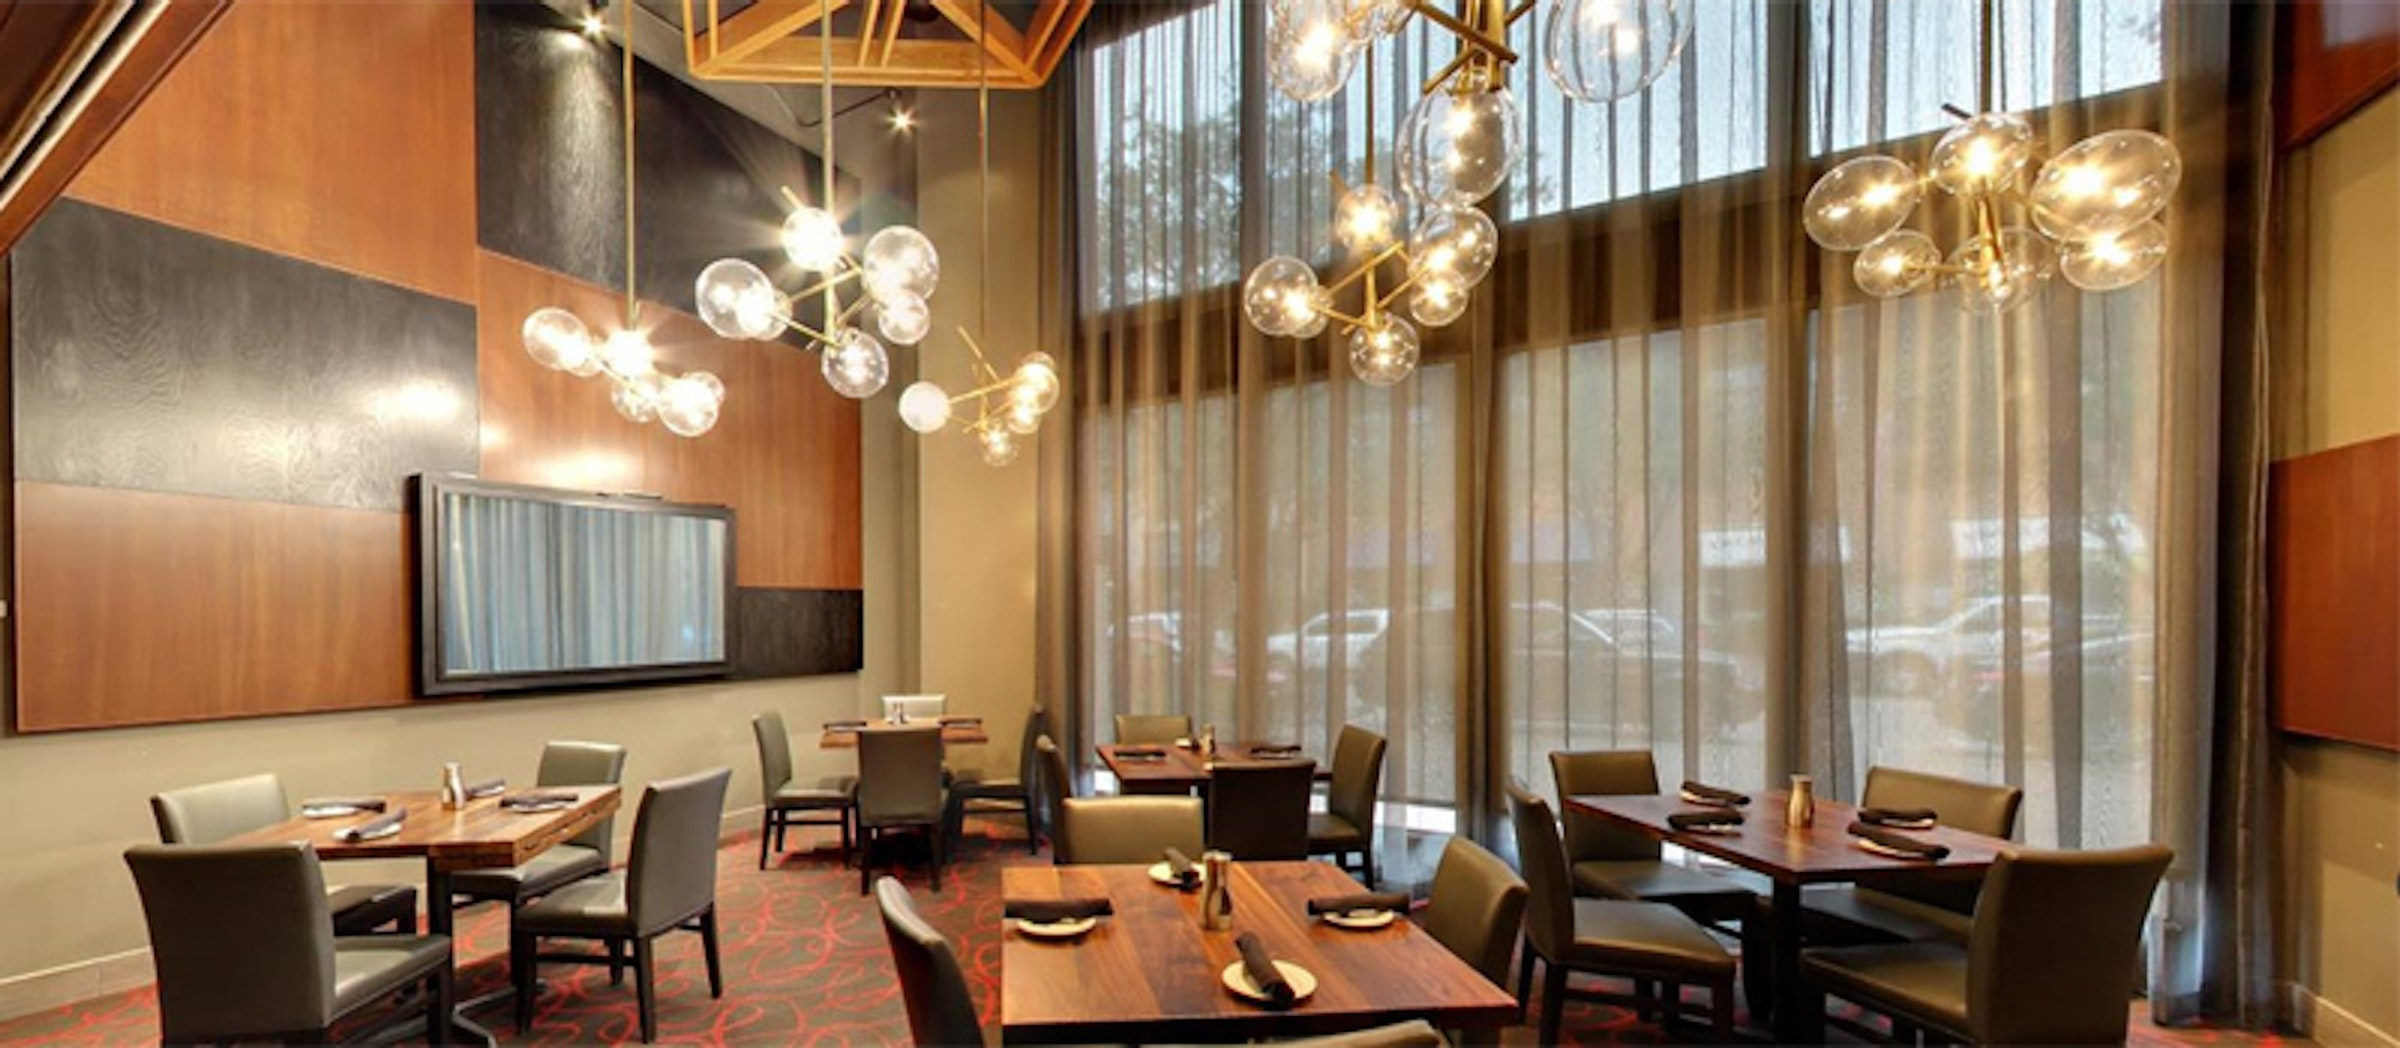 Del Frisco's Grille - Plano in Beyond Dallas